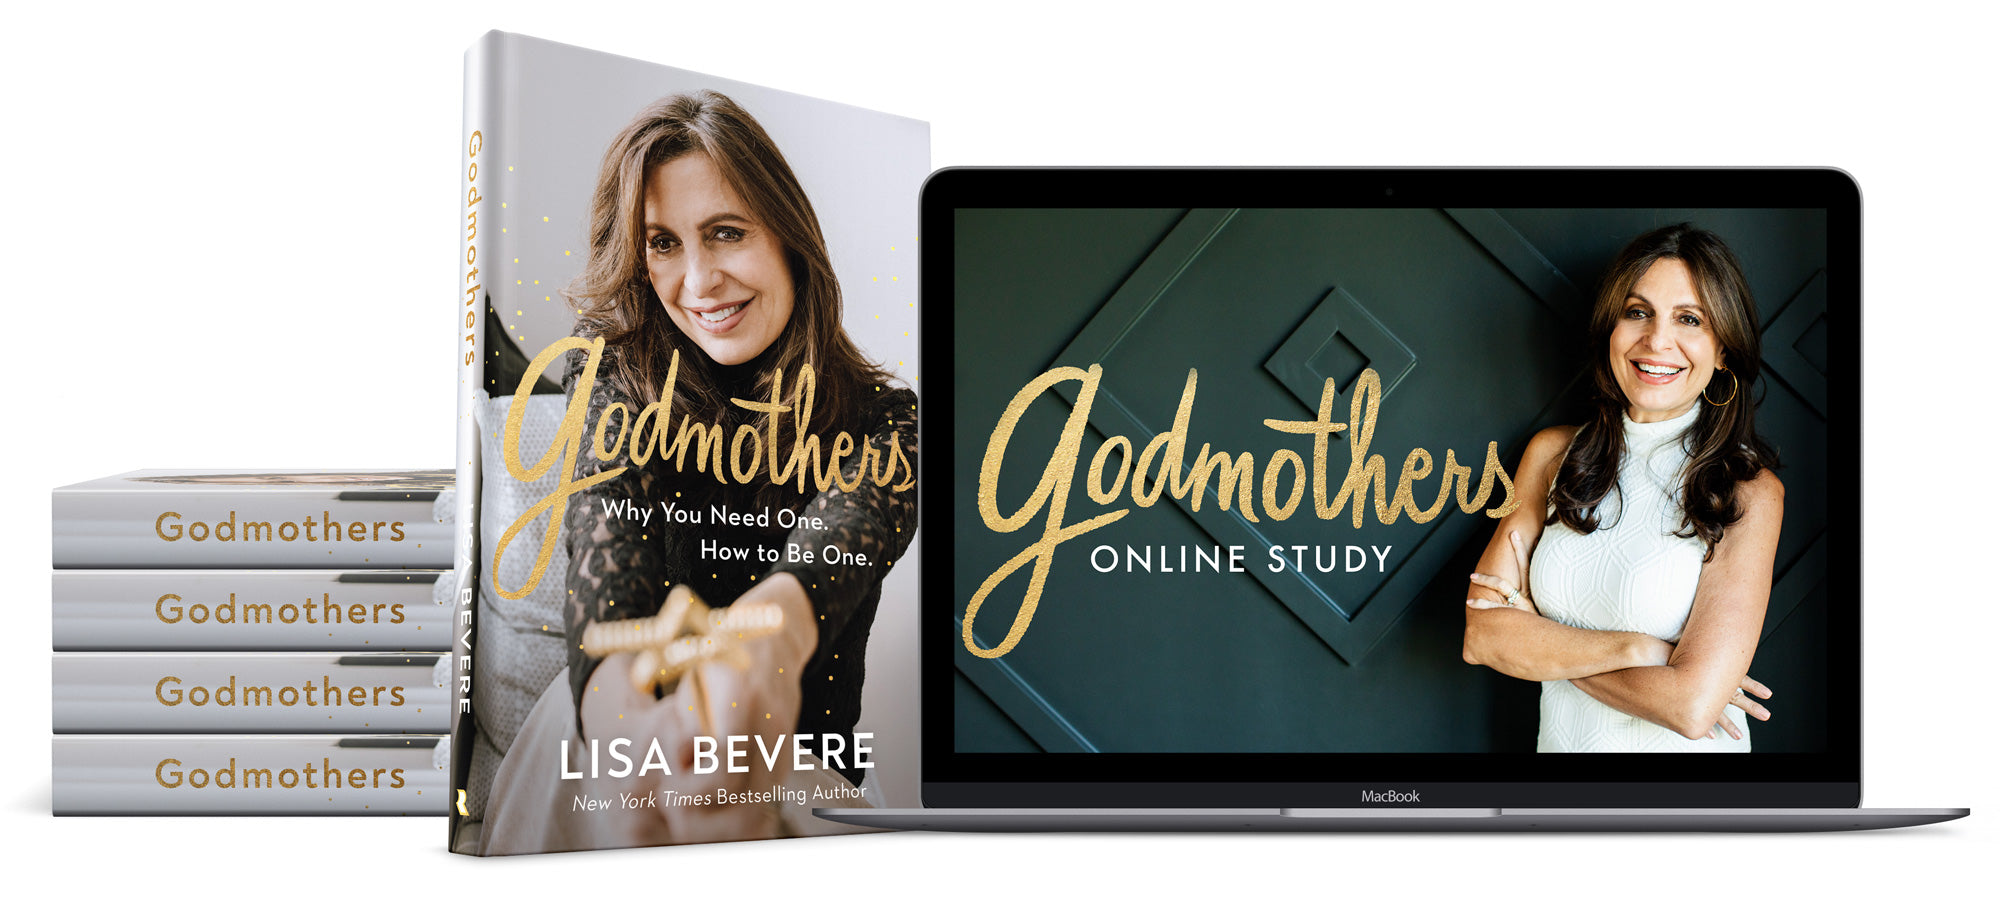 Godmothers 5 Books + Study